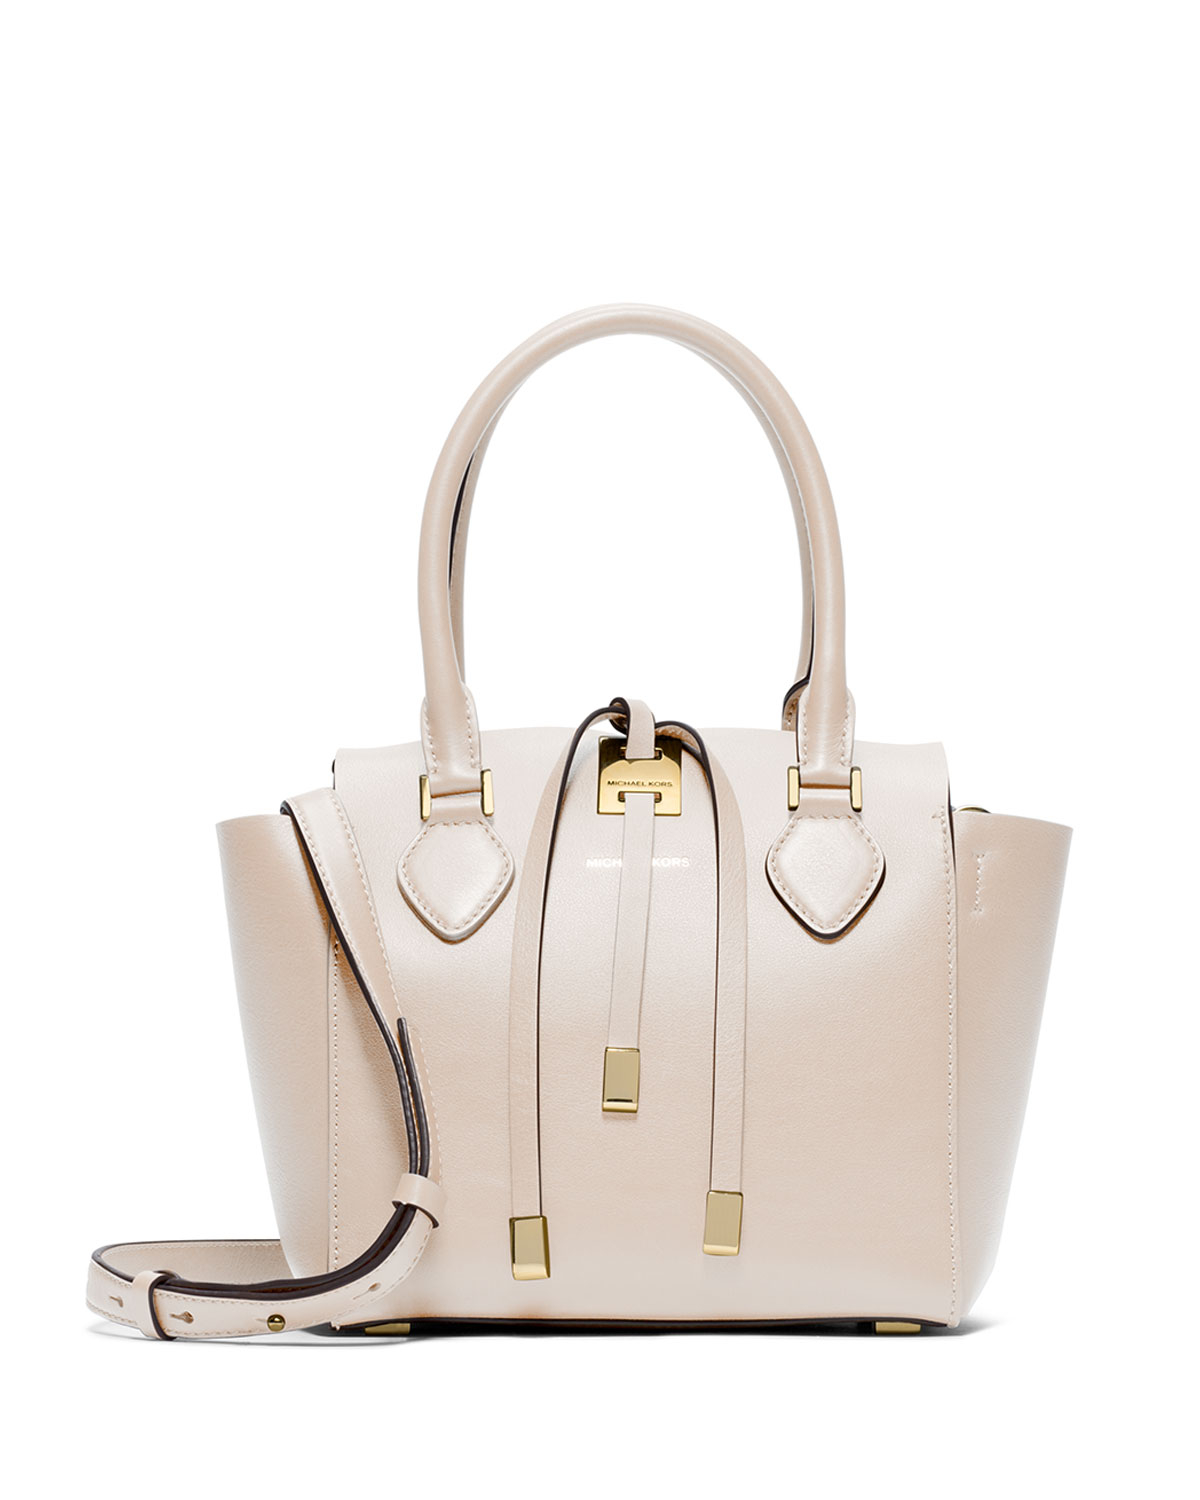 f4e3a5981aed ... aliexpress lyst michael kors miranda extra small tote bag in white  f603e f4f1f